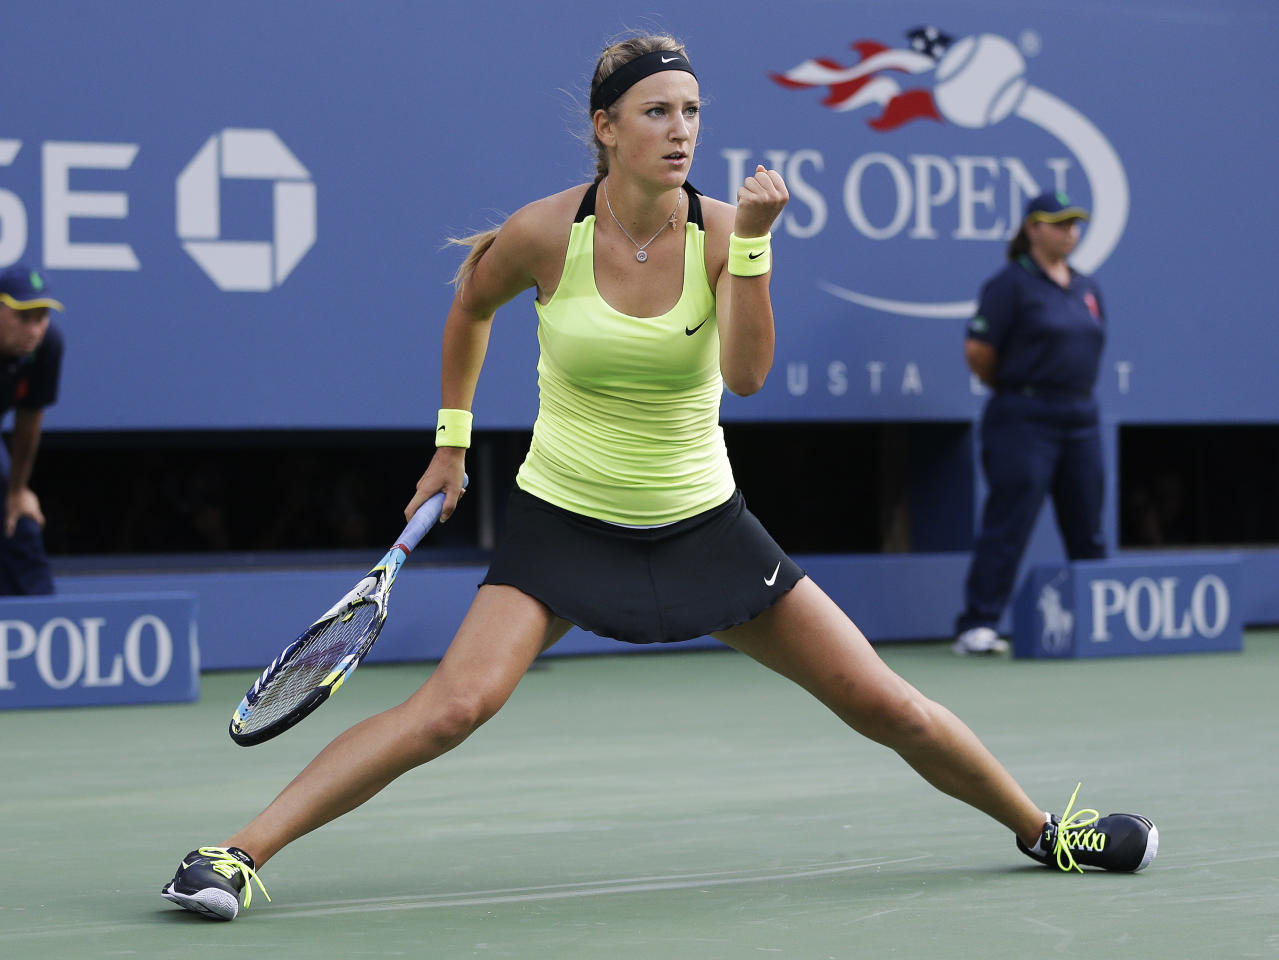 Victoria Azarenka, of Belarus, reacts while playing against Serena Williams during the championship match at the 2012 US Open tennis tournament, Sunday, Sept. 9, 2012, in New York. (AP Photo/Darron Cummings)